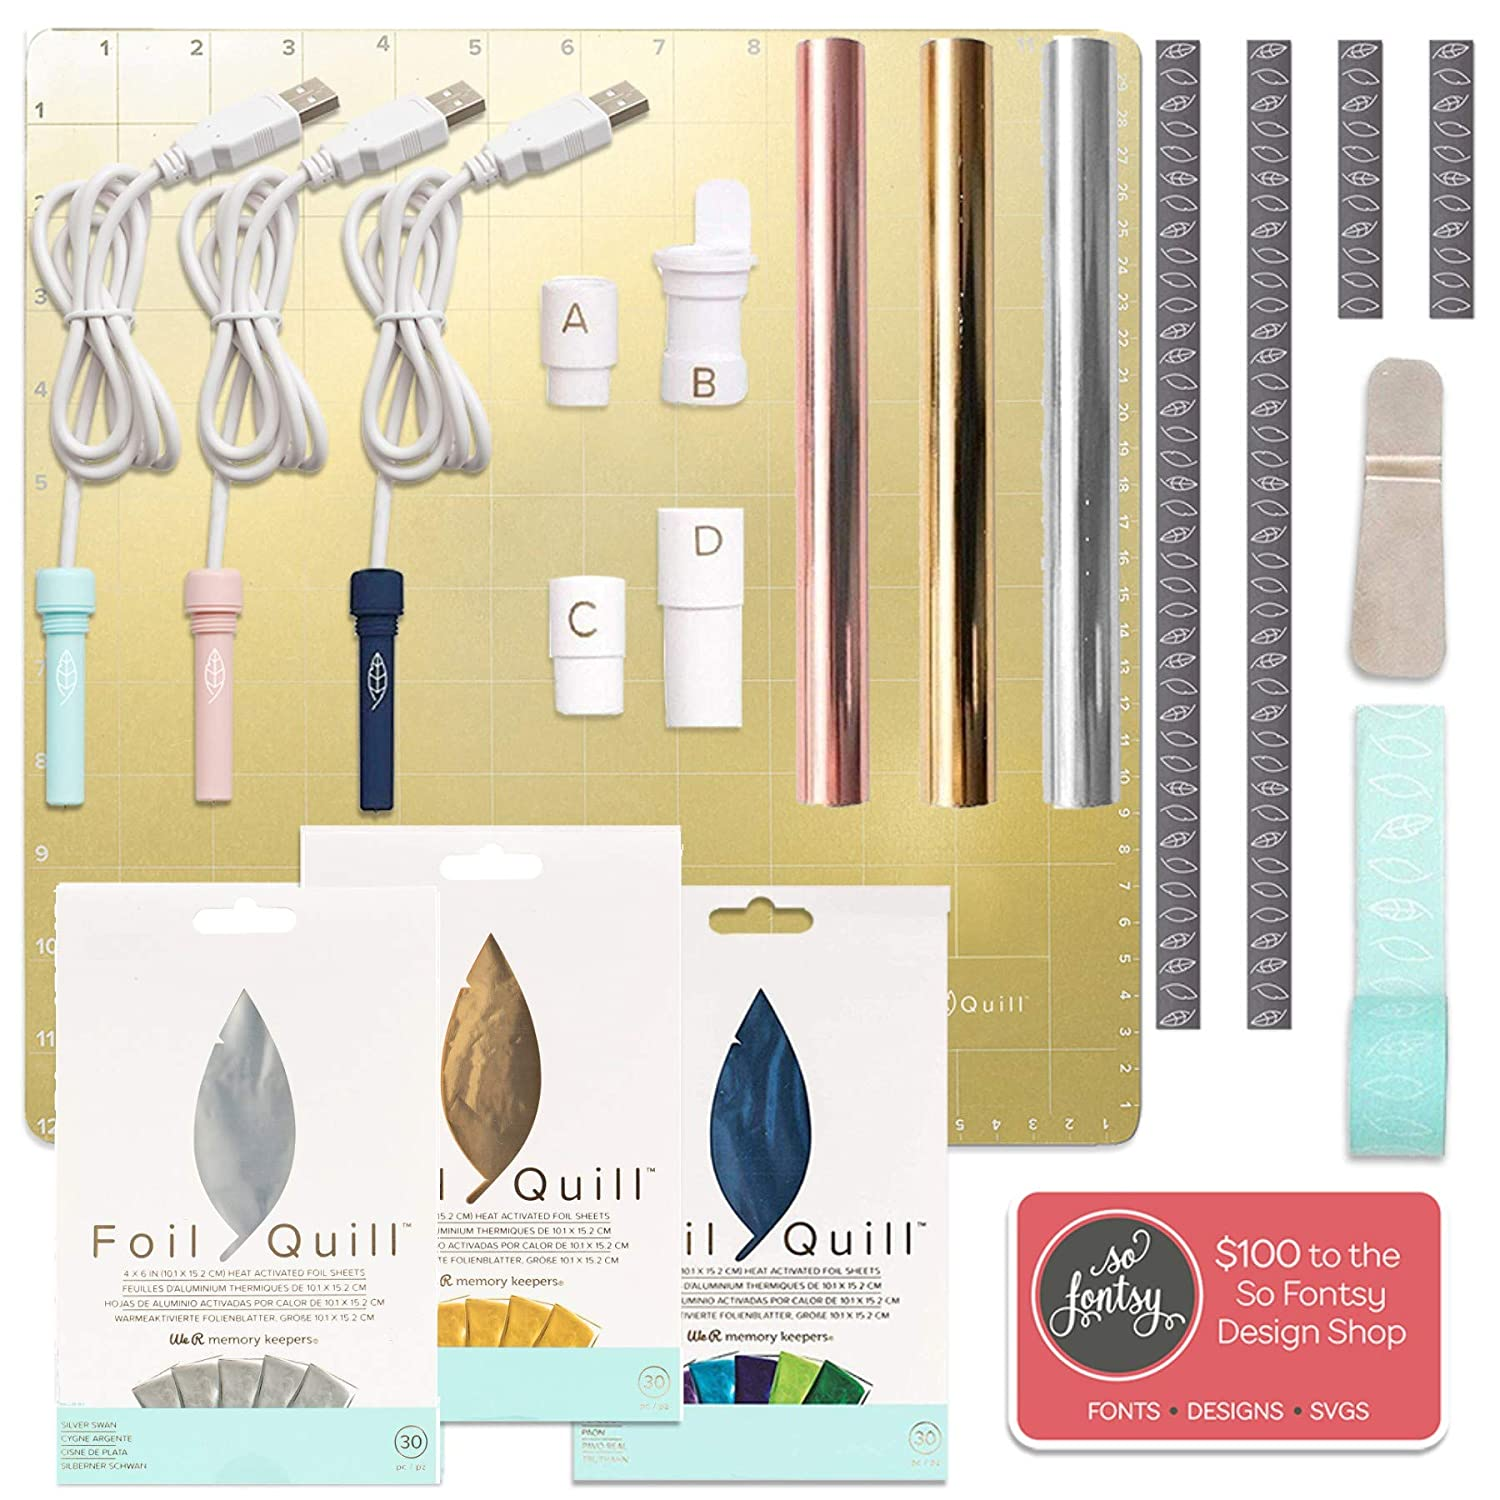 Magnetic Mat Foils Tape 90 Foil Sheets Adapters Design Card Foil Quill All-in-One Deluxe Bundle 3 Quill Sizes